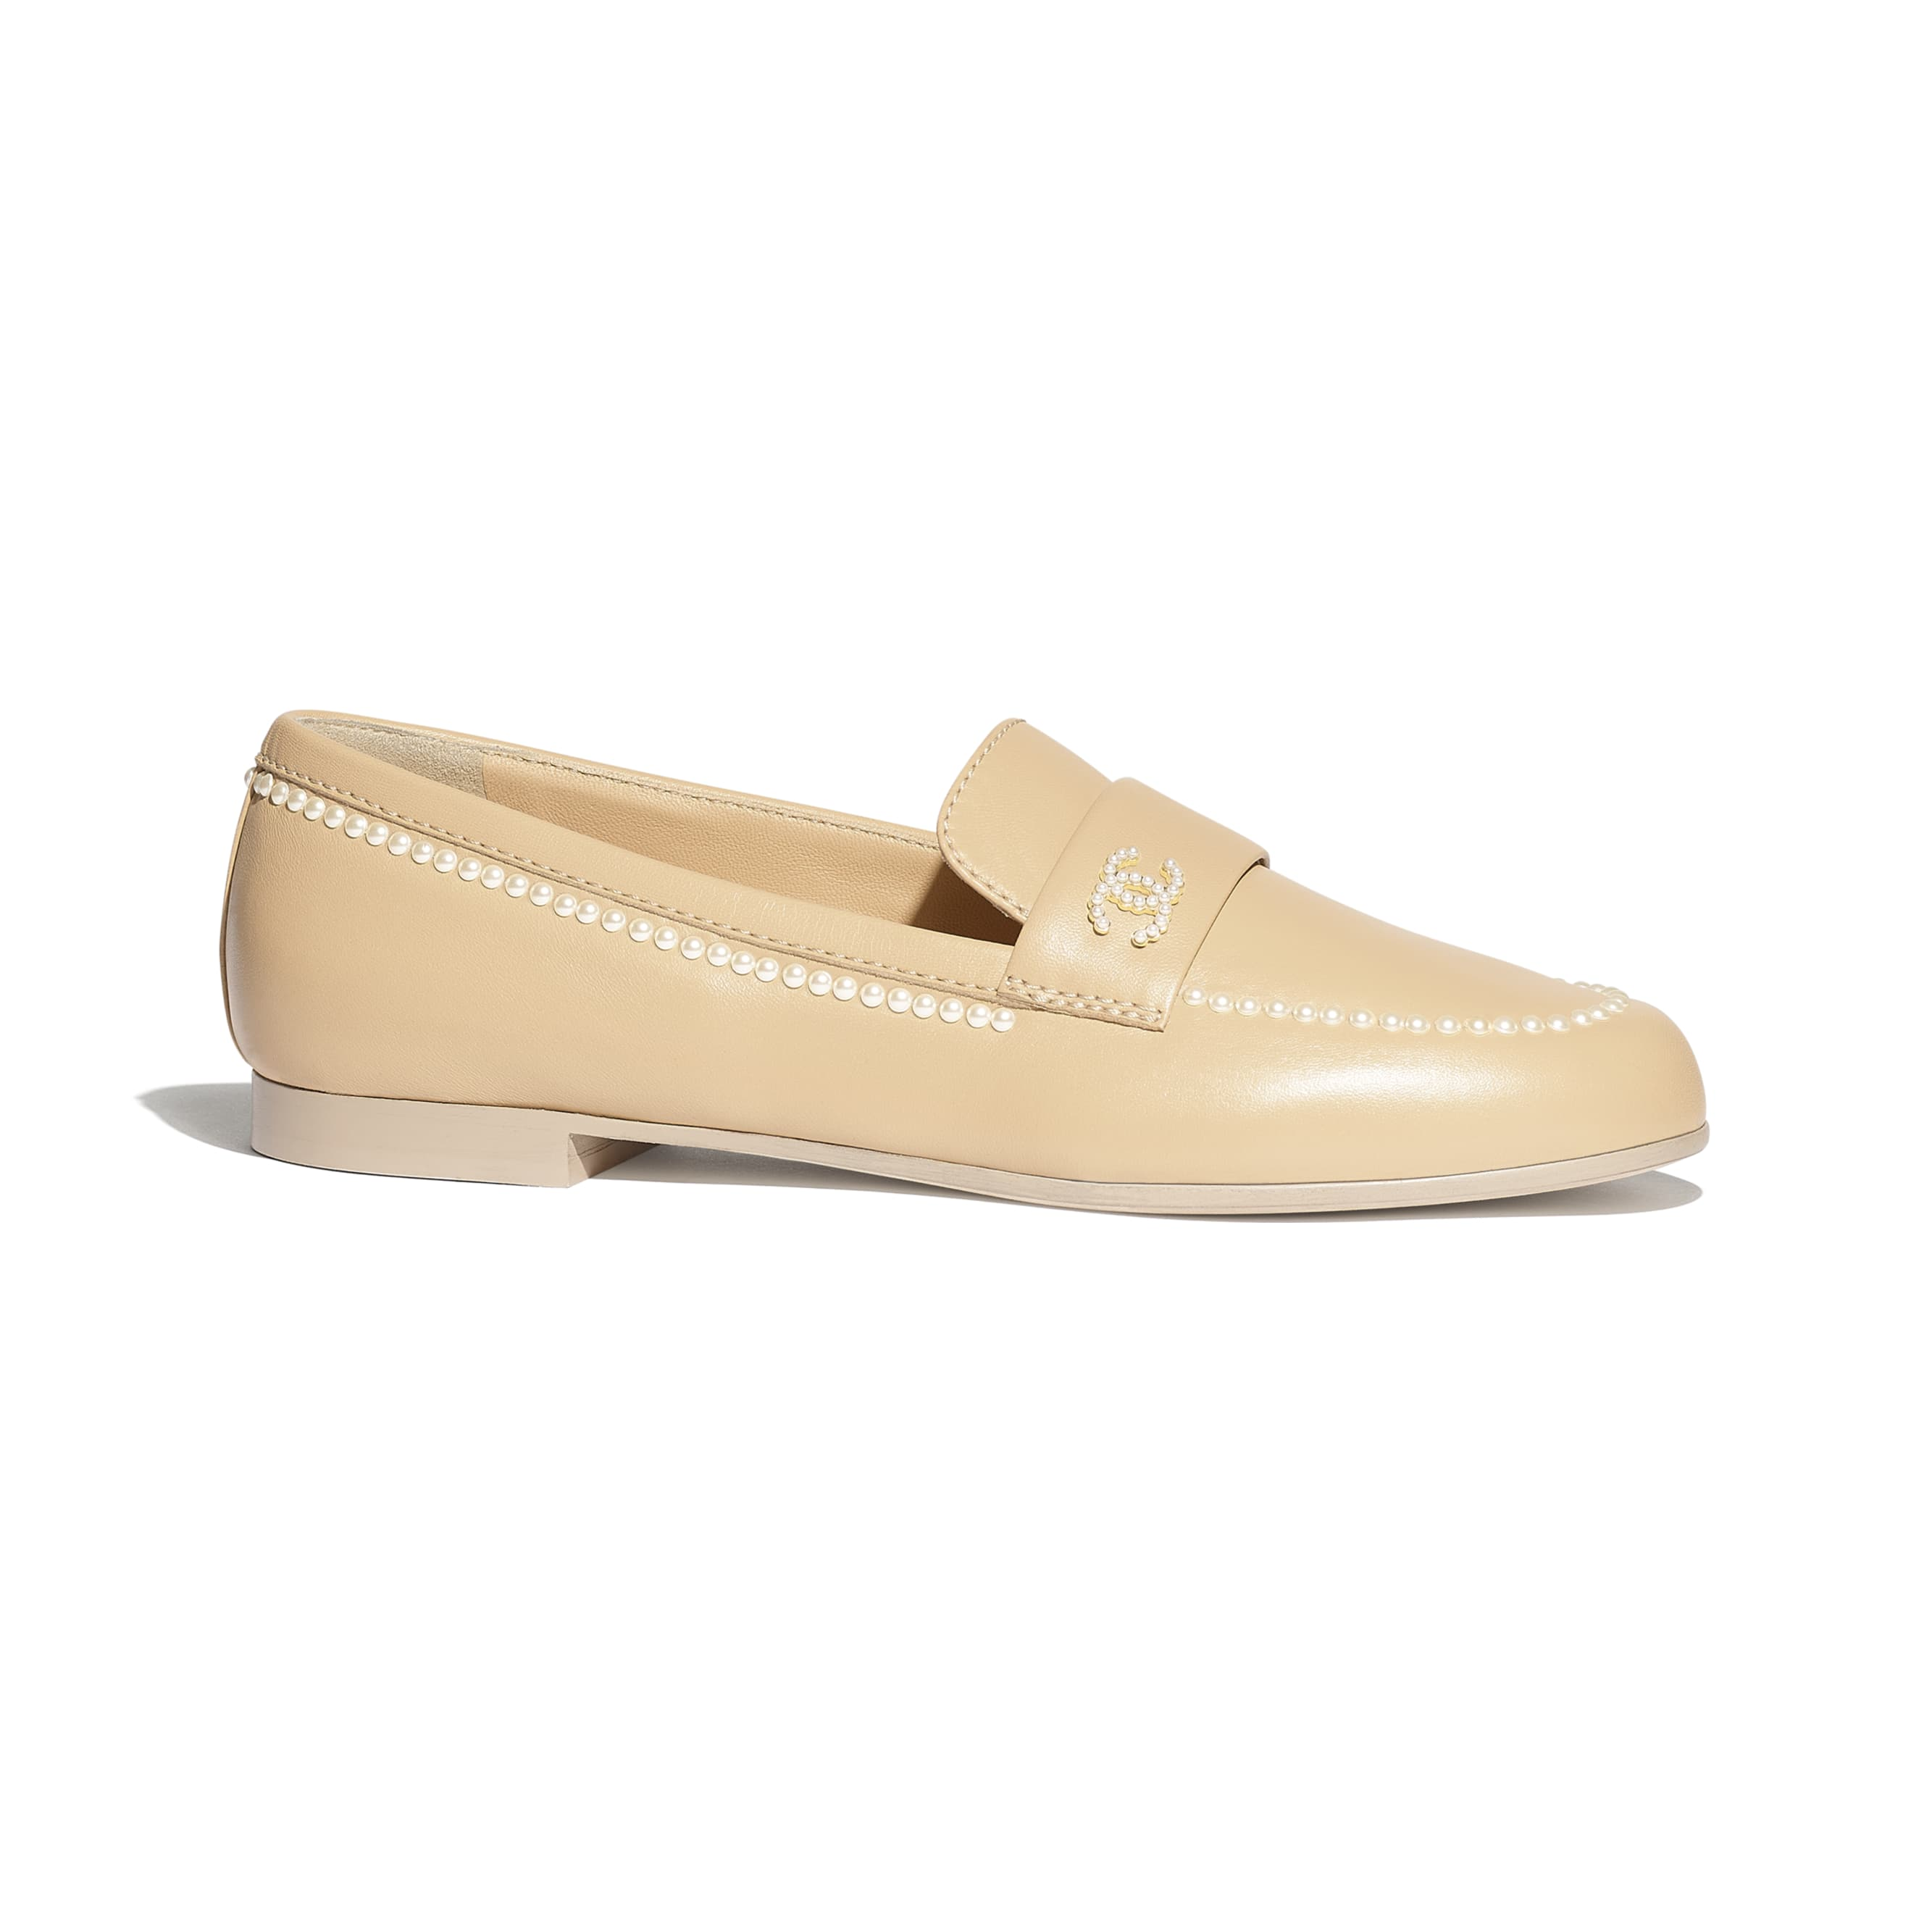 Loafers - Beige - Lambskin - Default view - see standard sized version